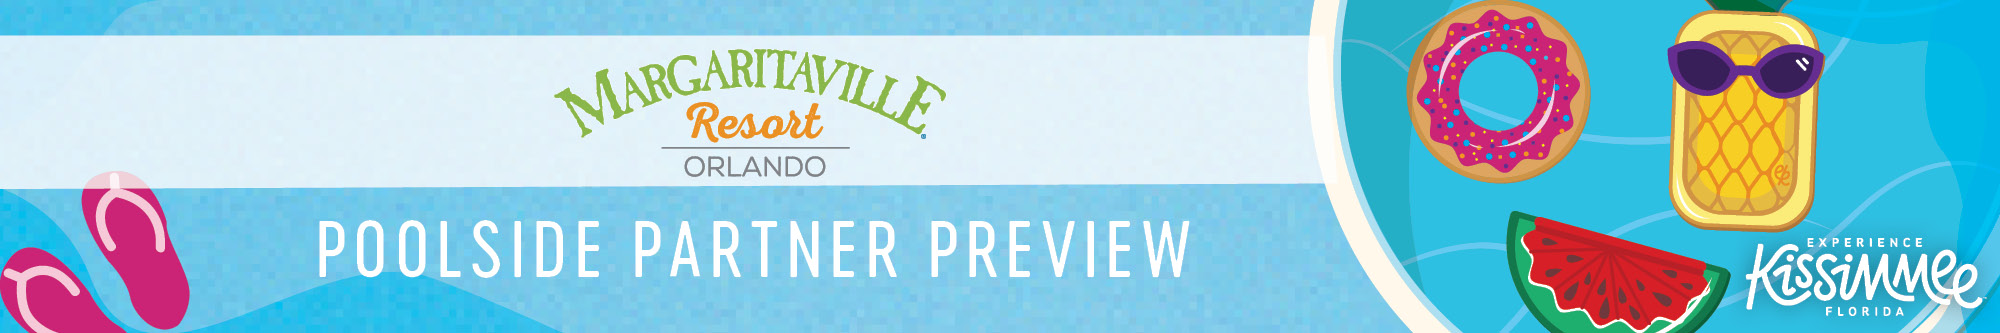 Exclusive Poolside Preview at Margaritaville